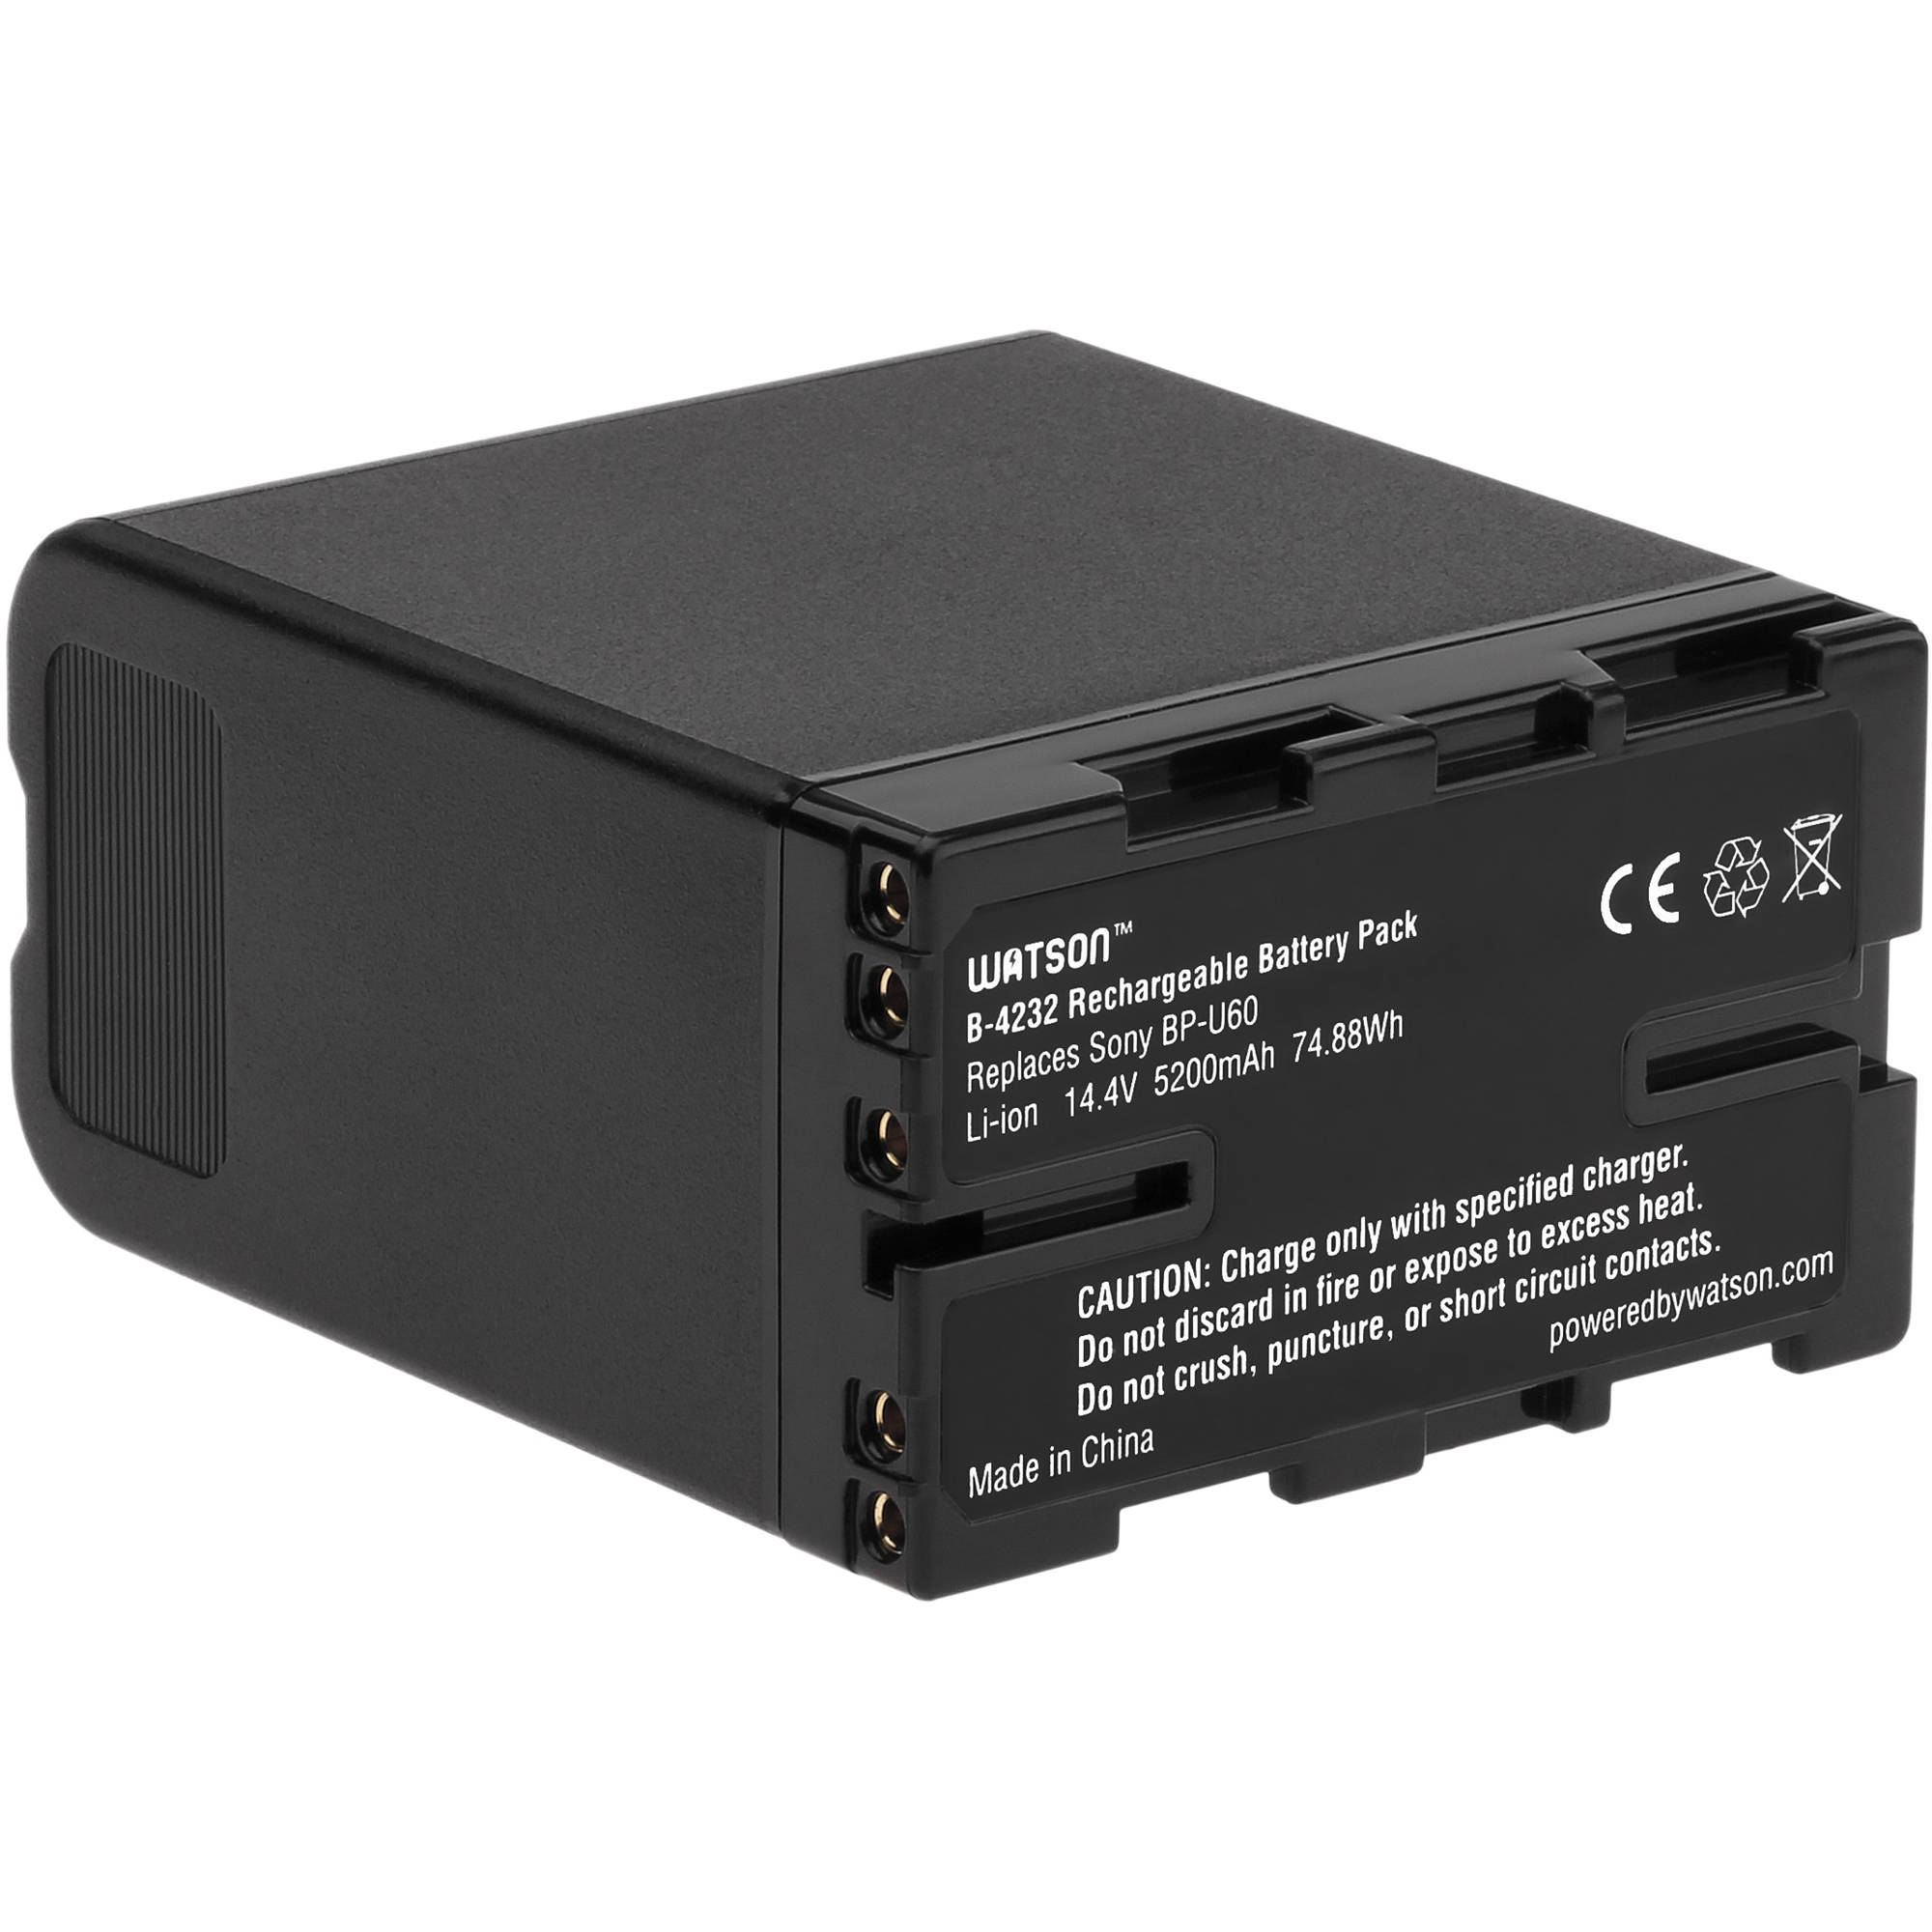 ICH-KDUAL-SU Black Ikan Dual Charger for Sony BP-U Style Battery